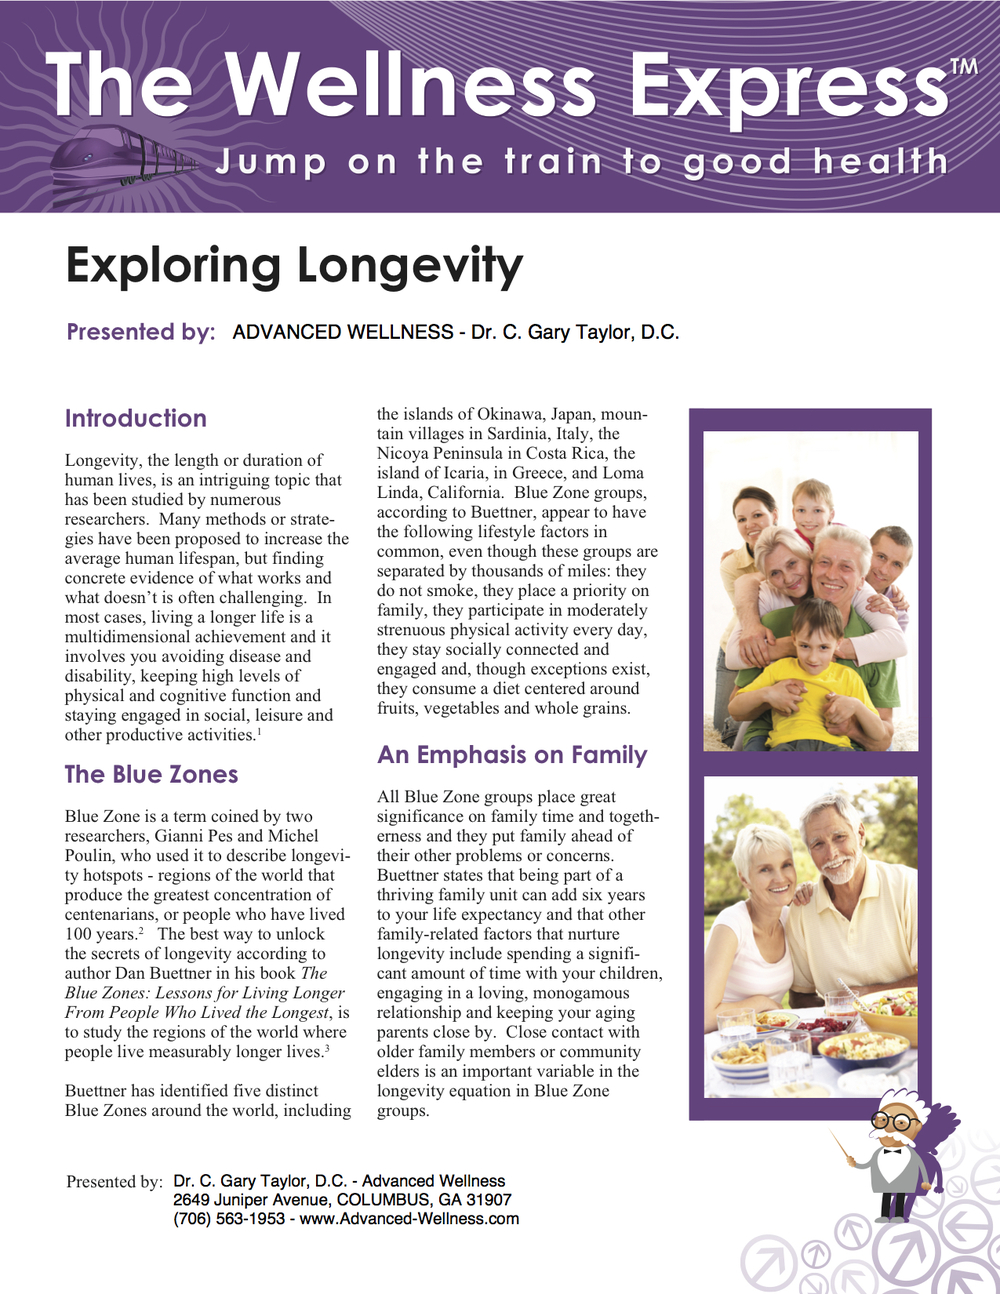 Weekly Newsletter: Exploring Longevity